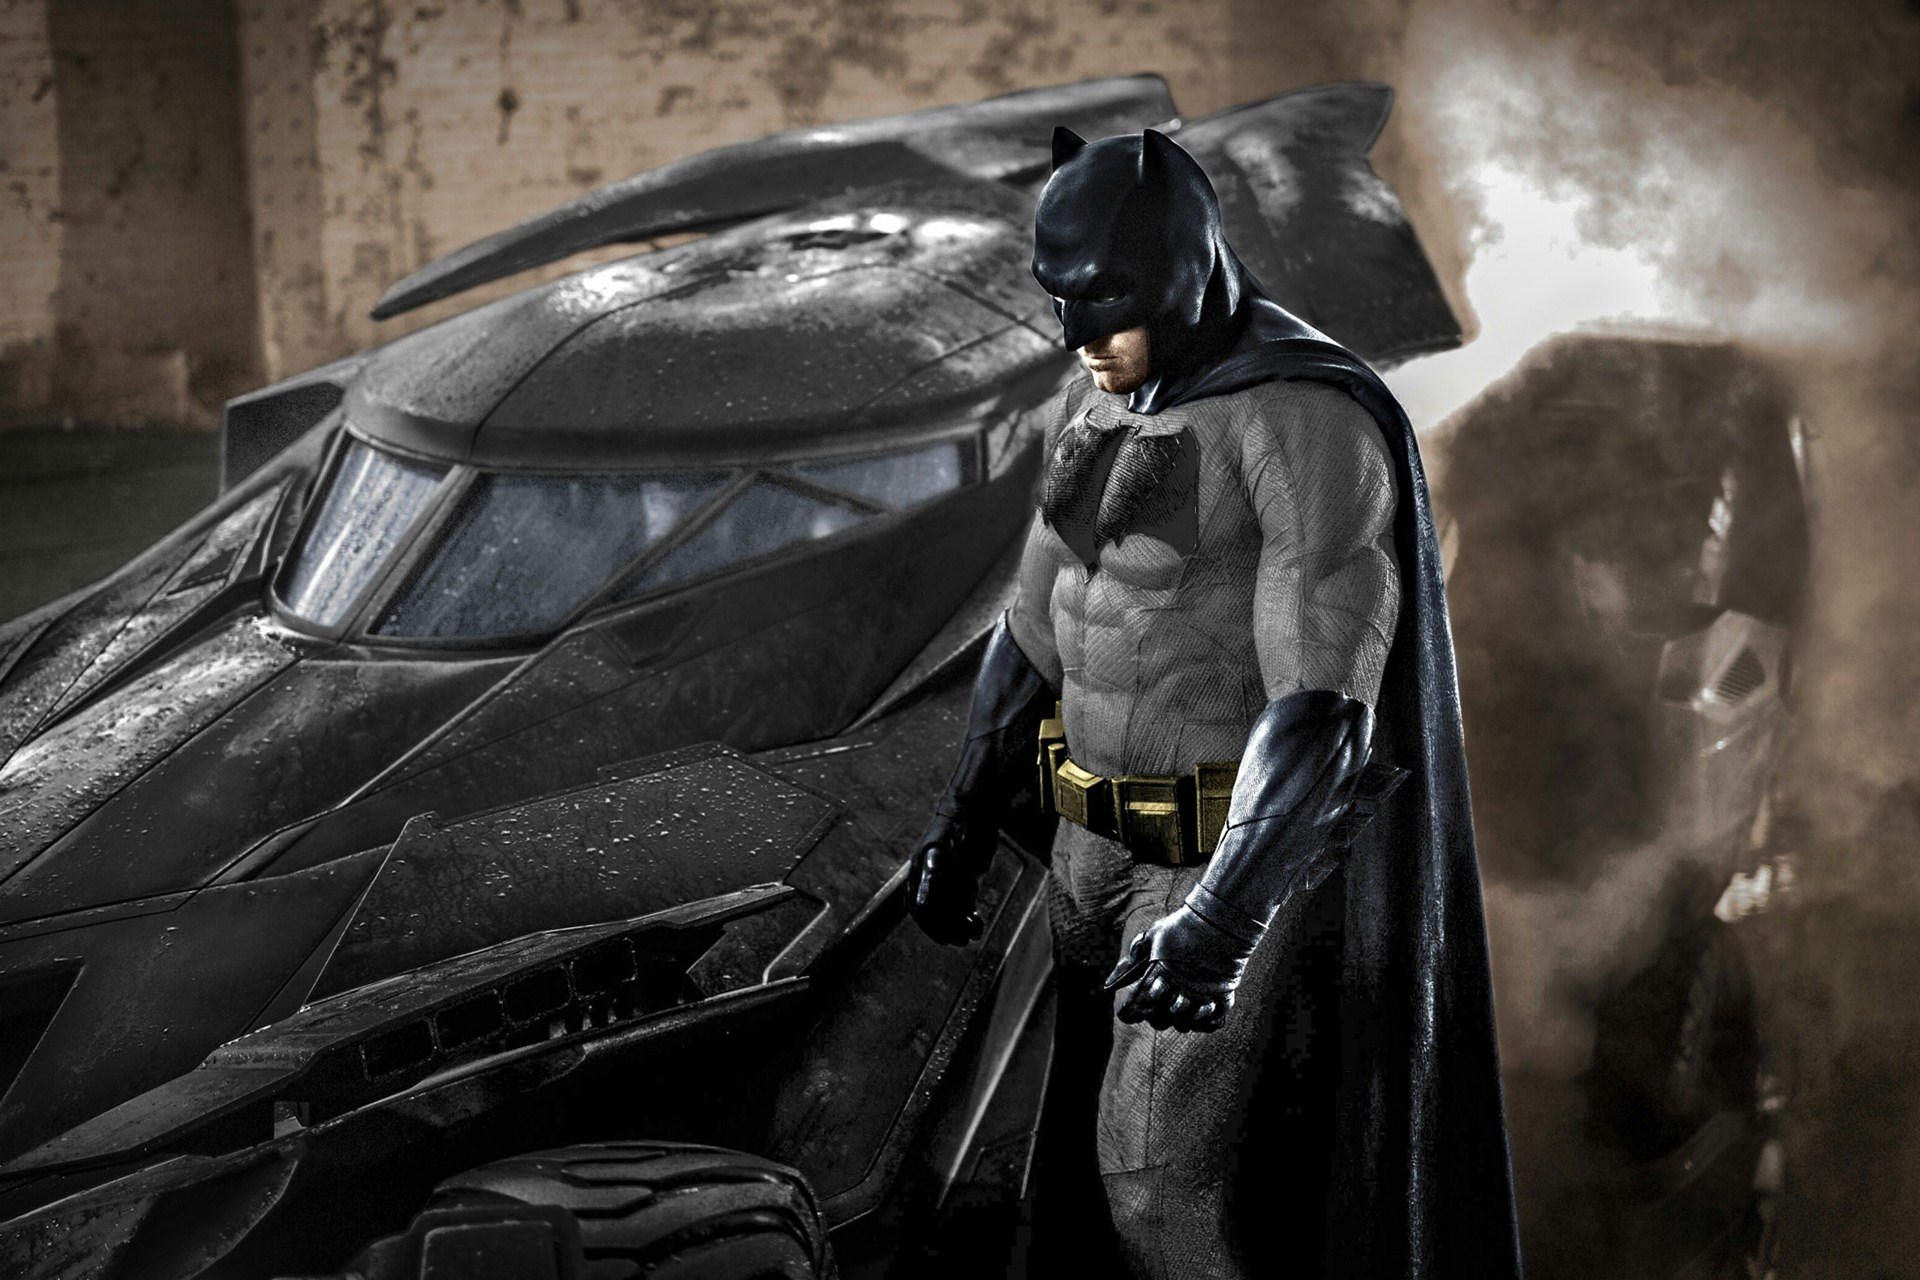 Wallpapers Of Batman Vs Superman Posted By John Simpson